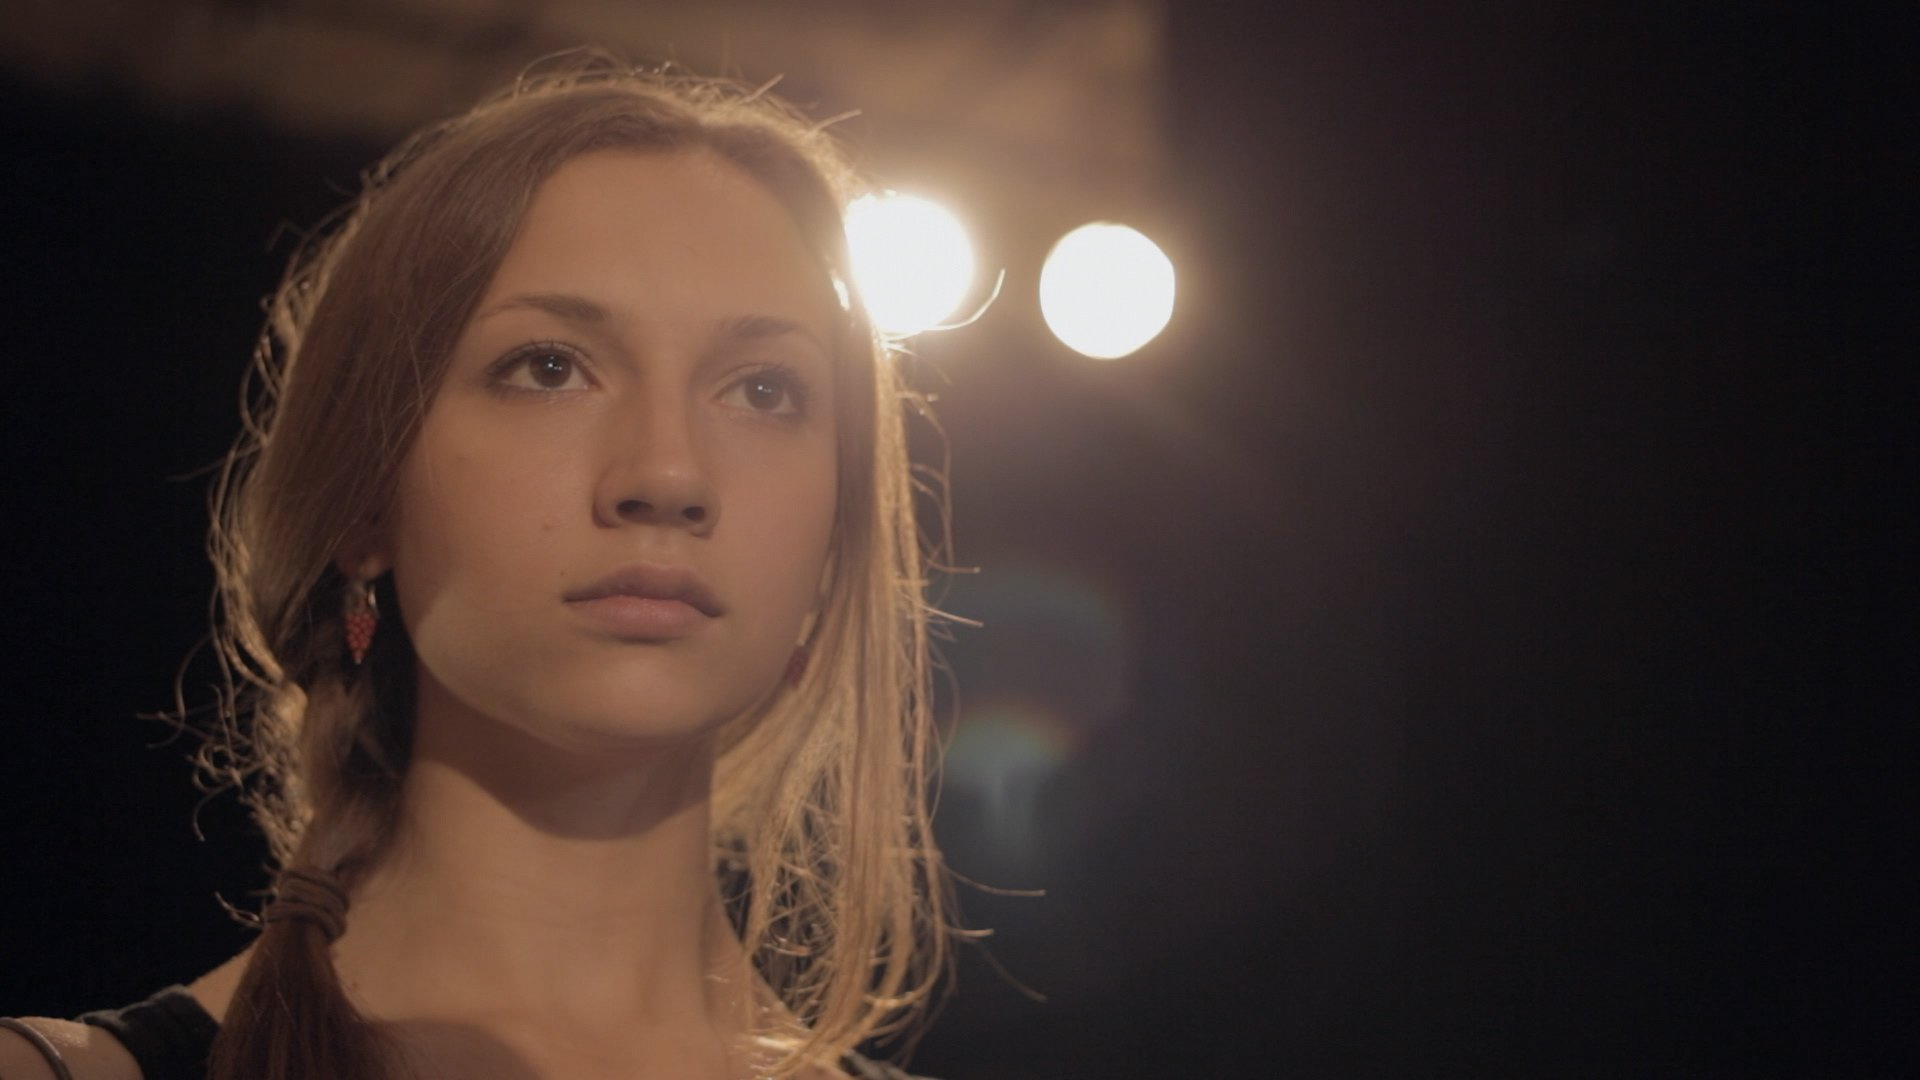 Light touch: director Angelina Nikonova swaps tragedy for comedy in new film